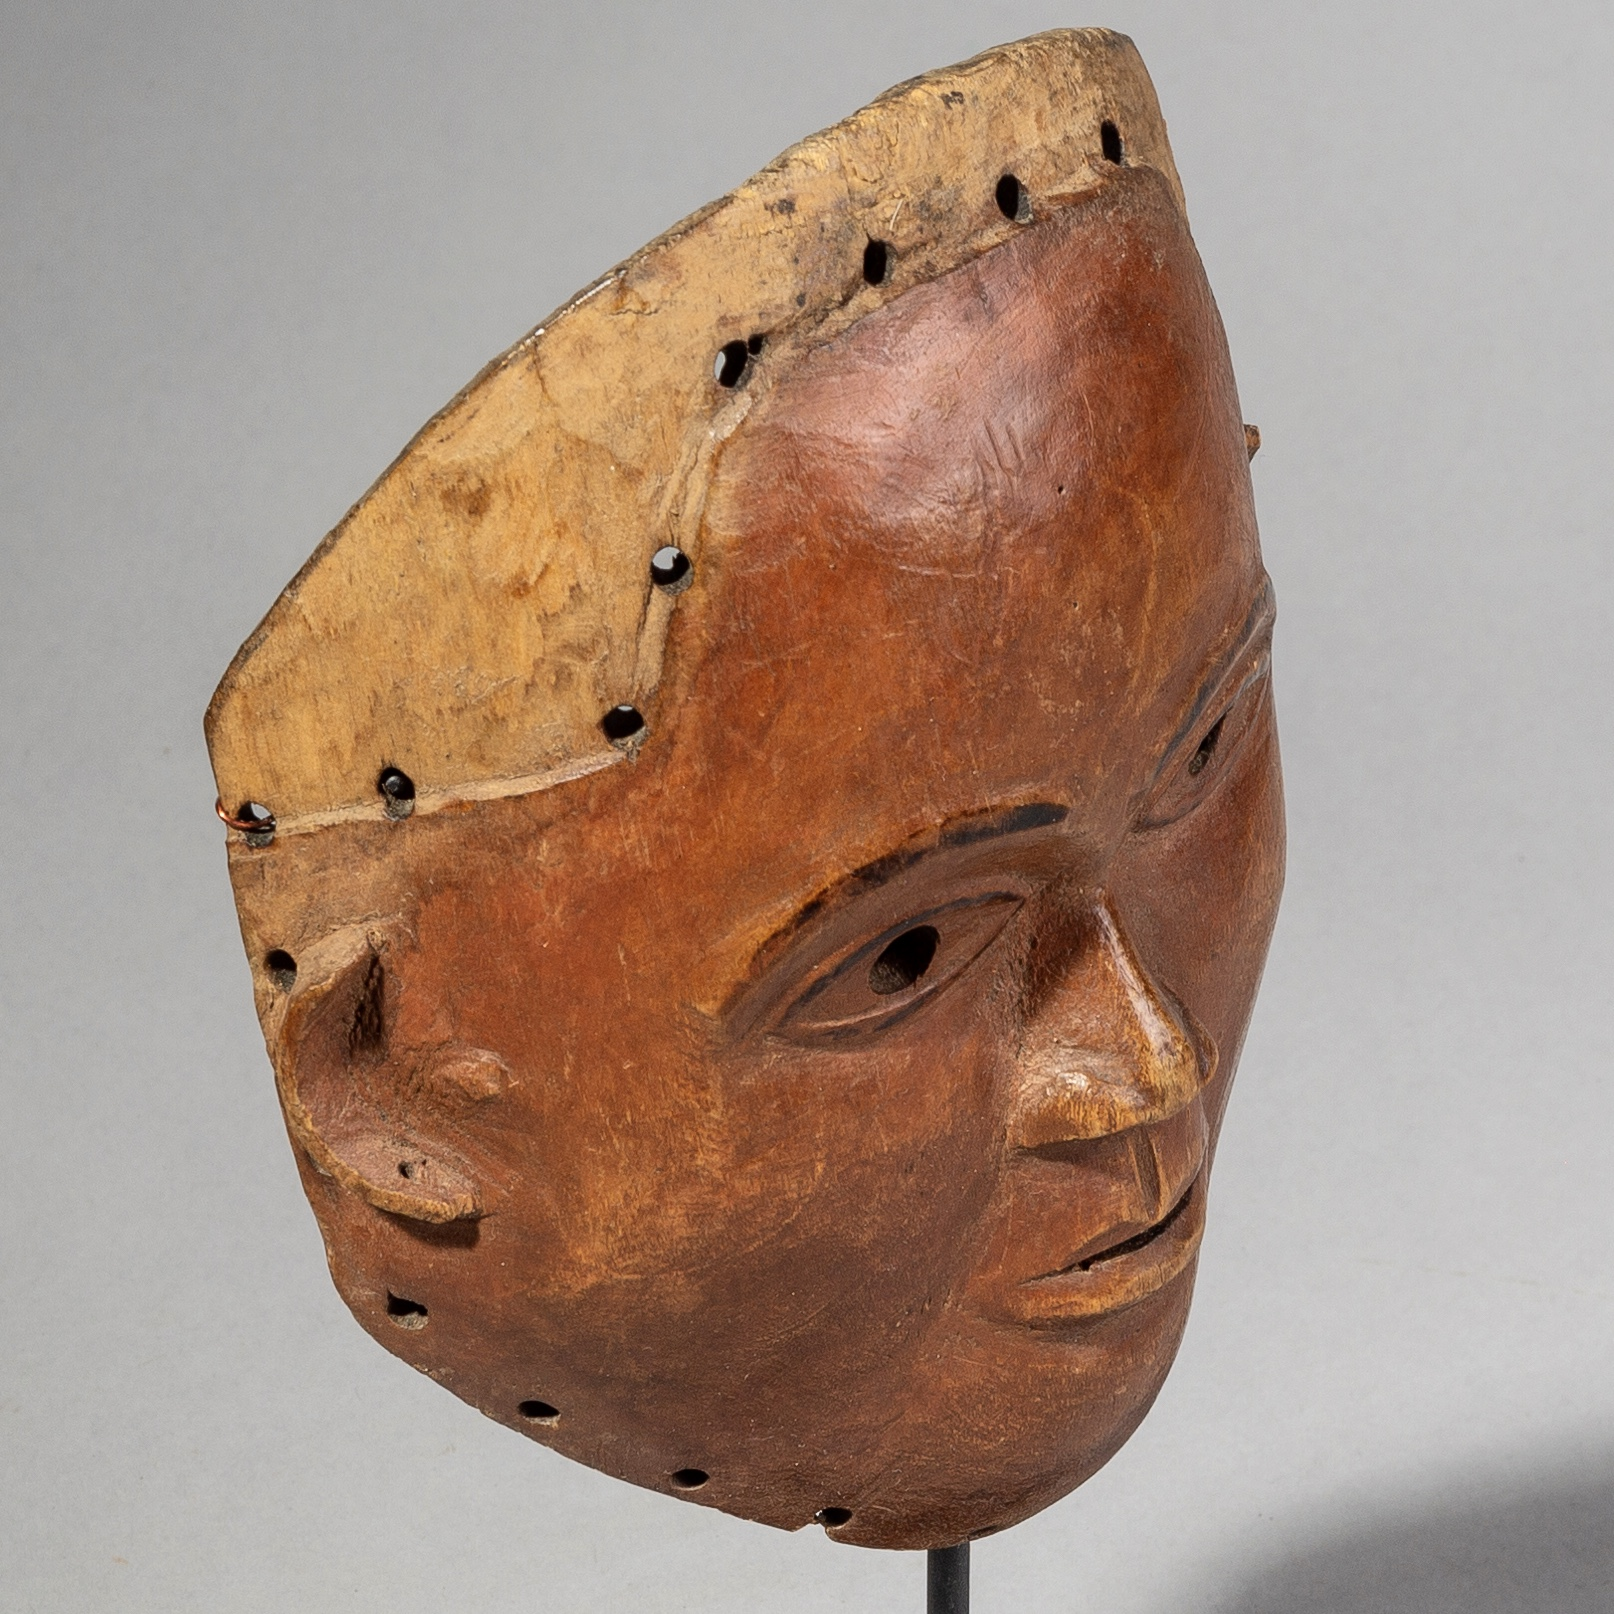 SD AN INNOCENT EXPRESSION MASK FROM THE CONGO ( No 1654 )